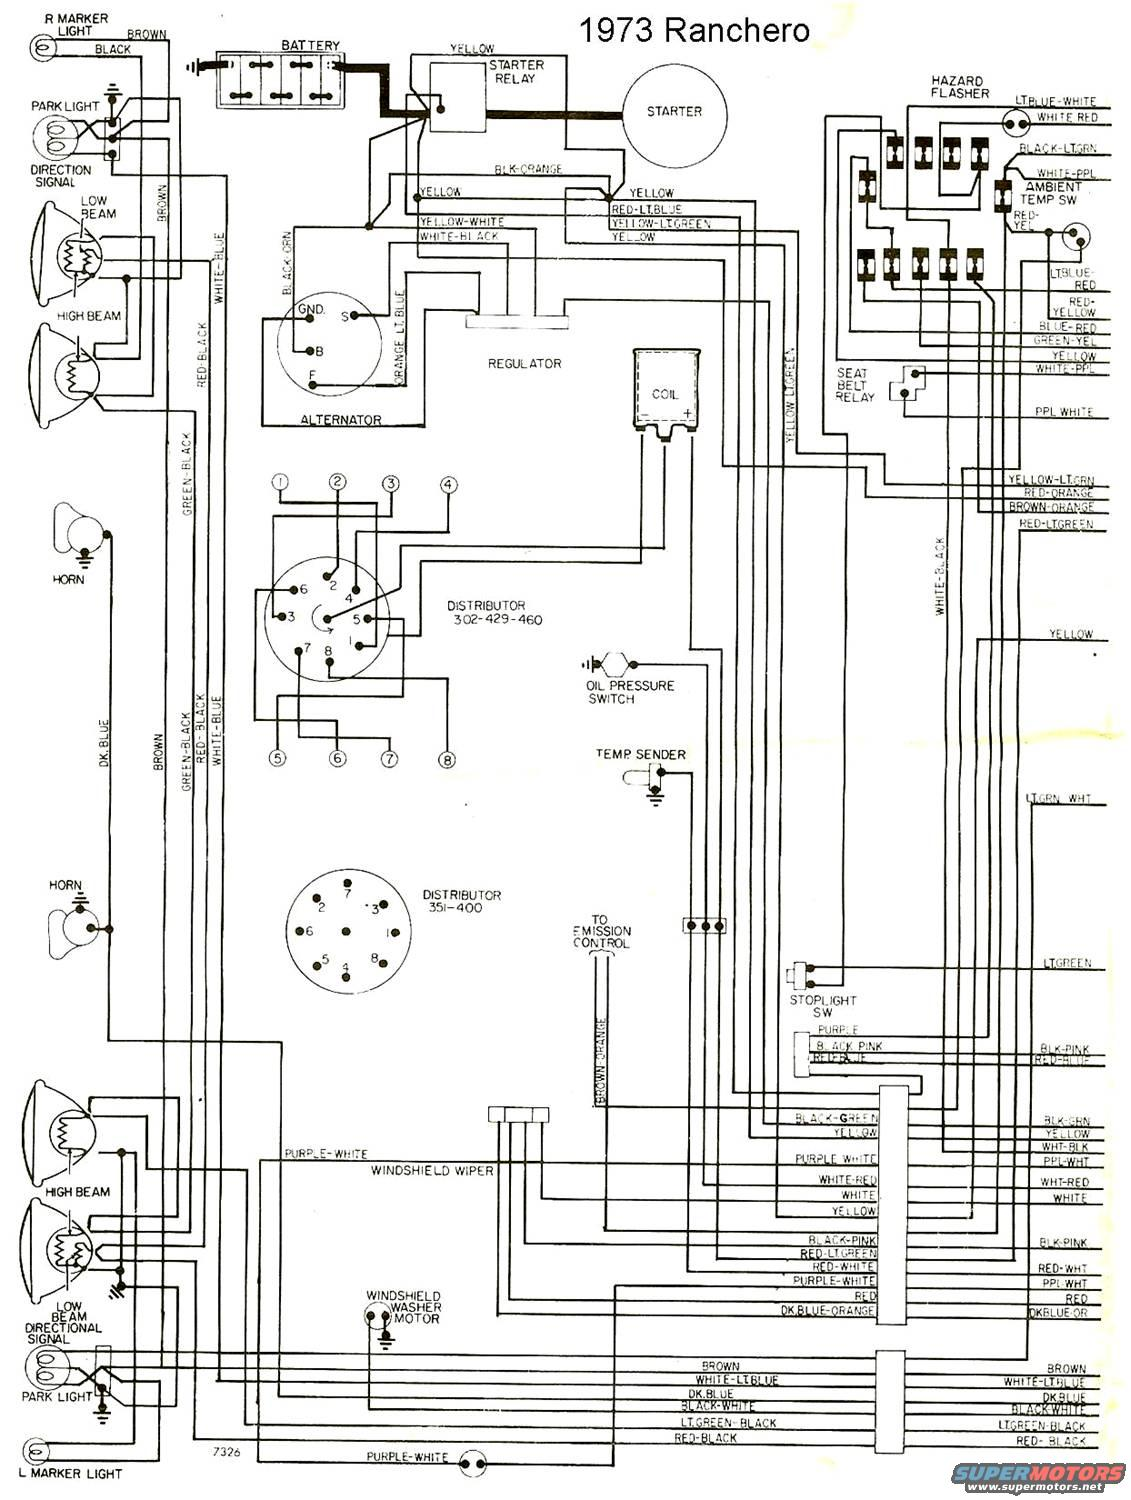 72 76 wiring diagrams ranchero us 73 wiring diagram